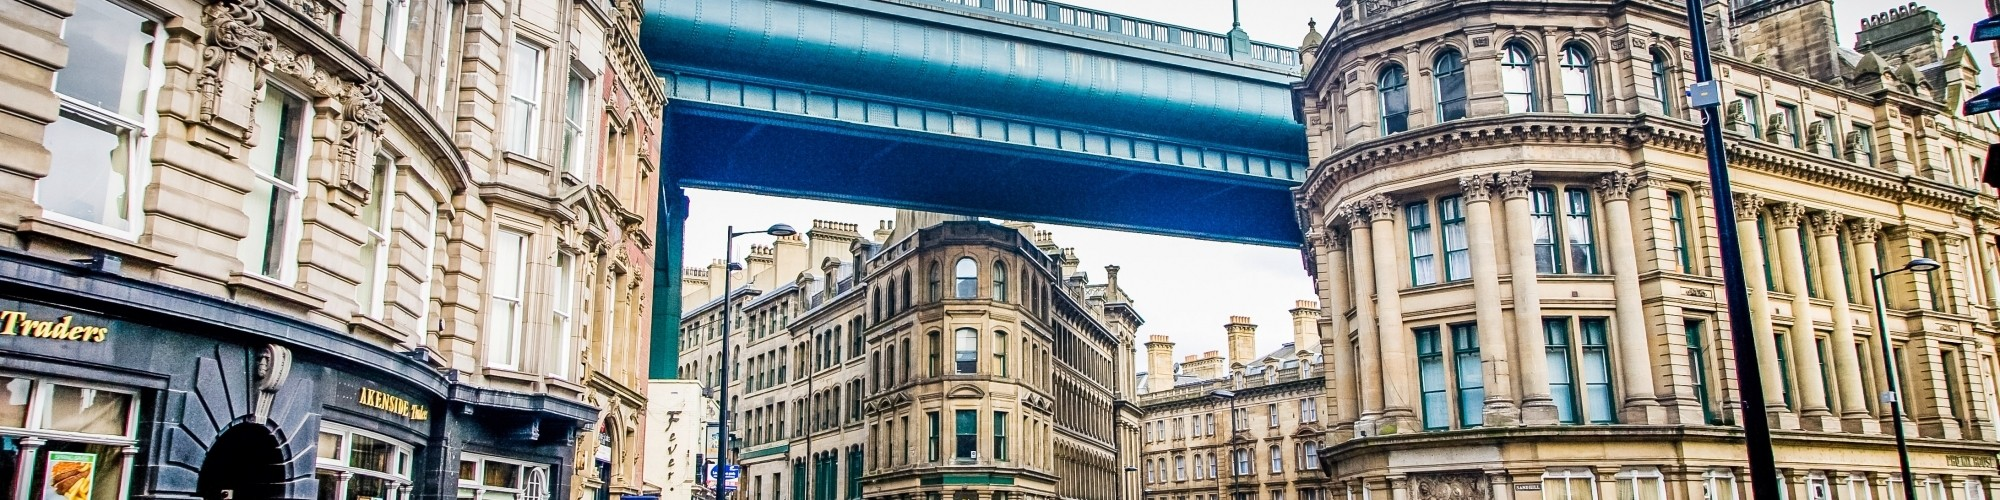 architecture-bridge-britain